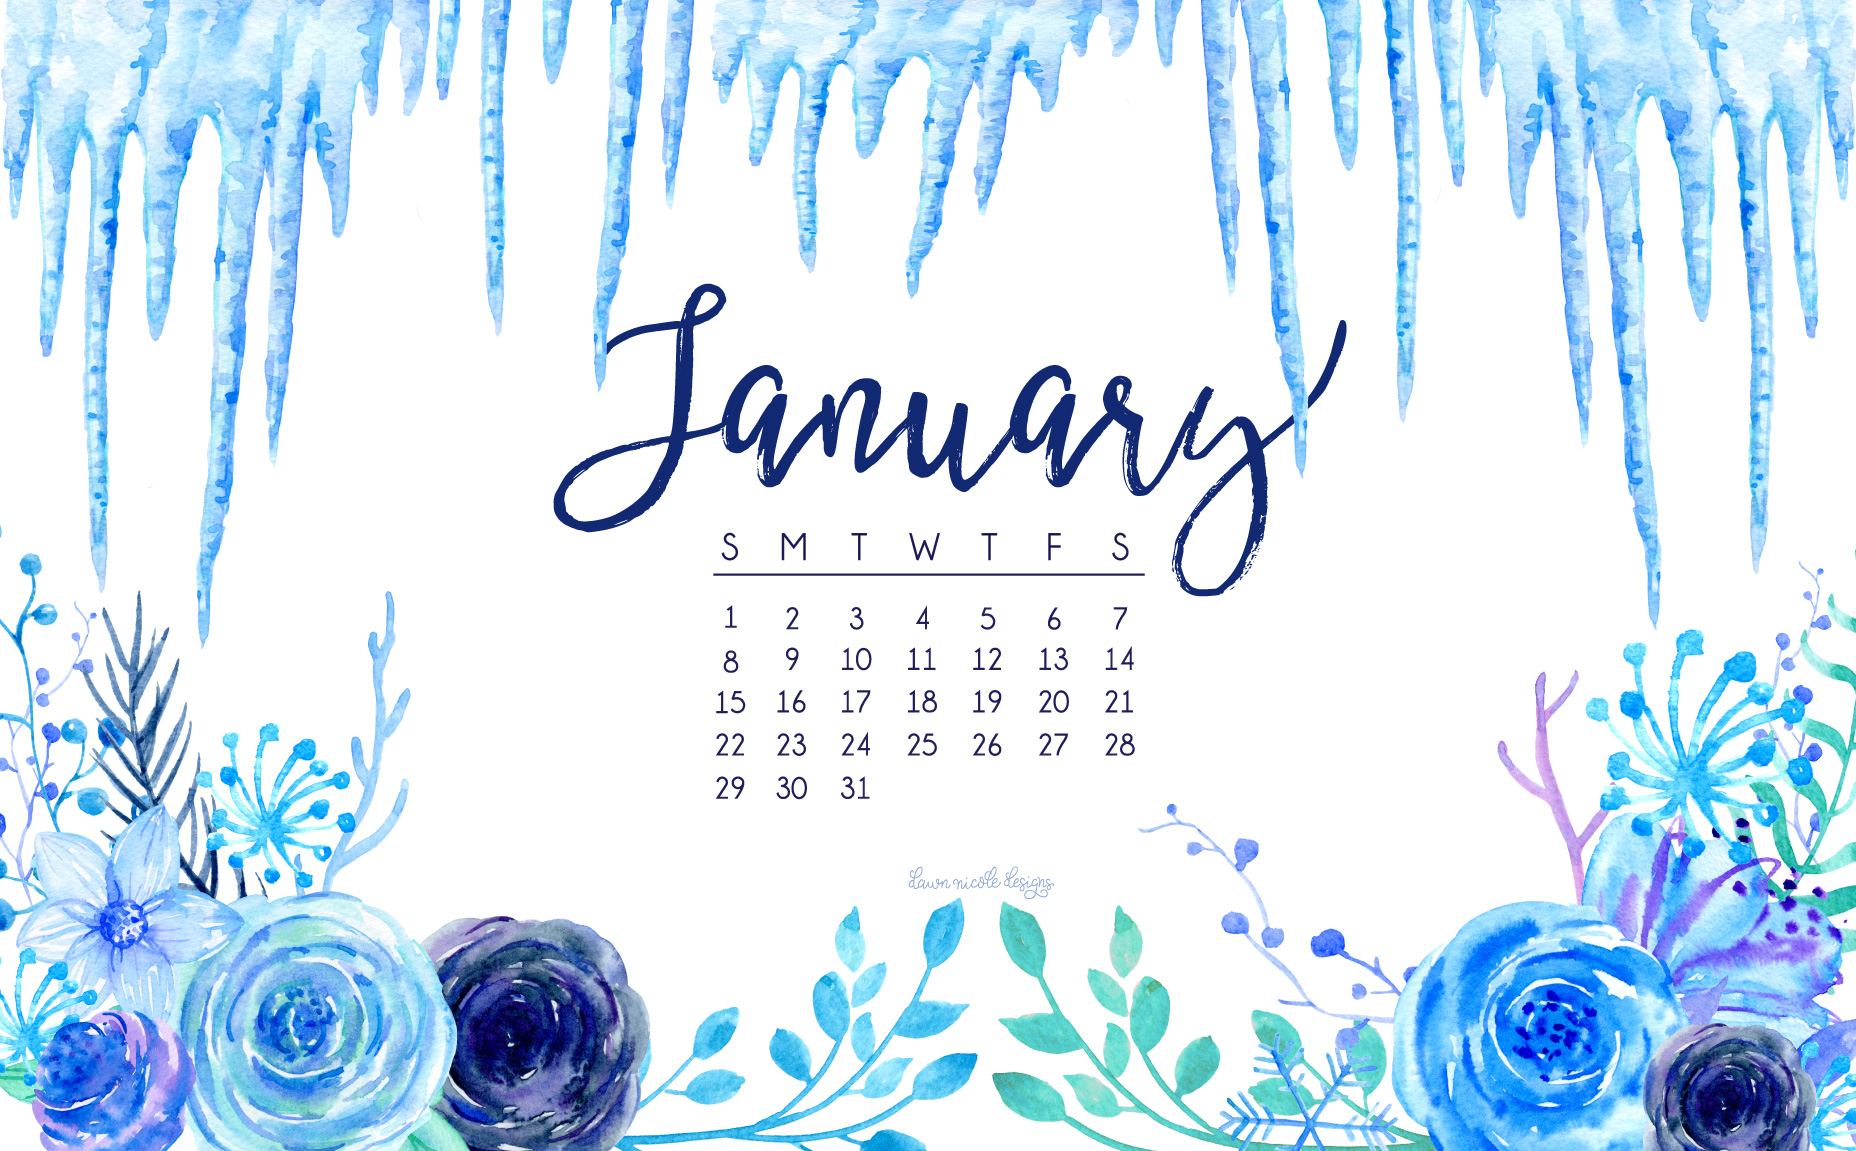 Free Download January 2017 Calendar Tech Pretties Dawn Nicole Designs 1856x1151 For Your Desktop Mobile Tablet Explore 97 January 2018 Wallpapers January 2018 Wallpapers January 2018 Calendar Wallpapers January Wallpaper